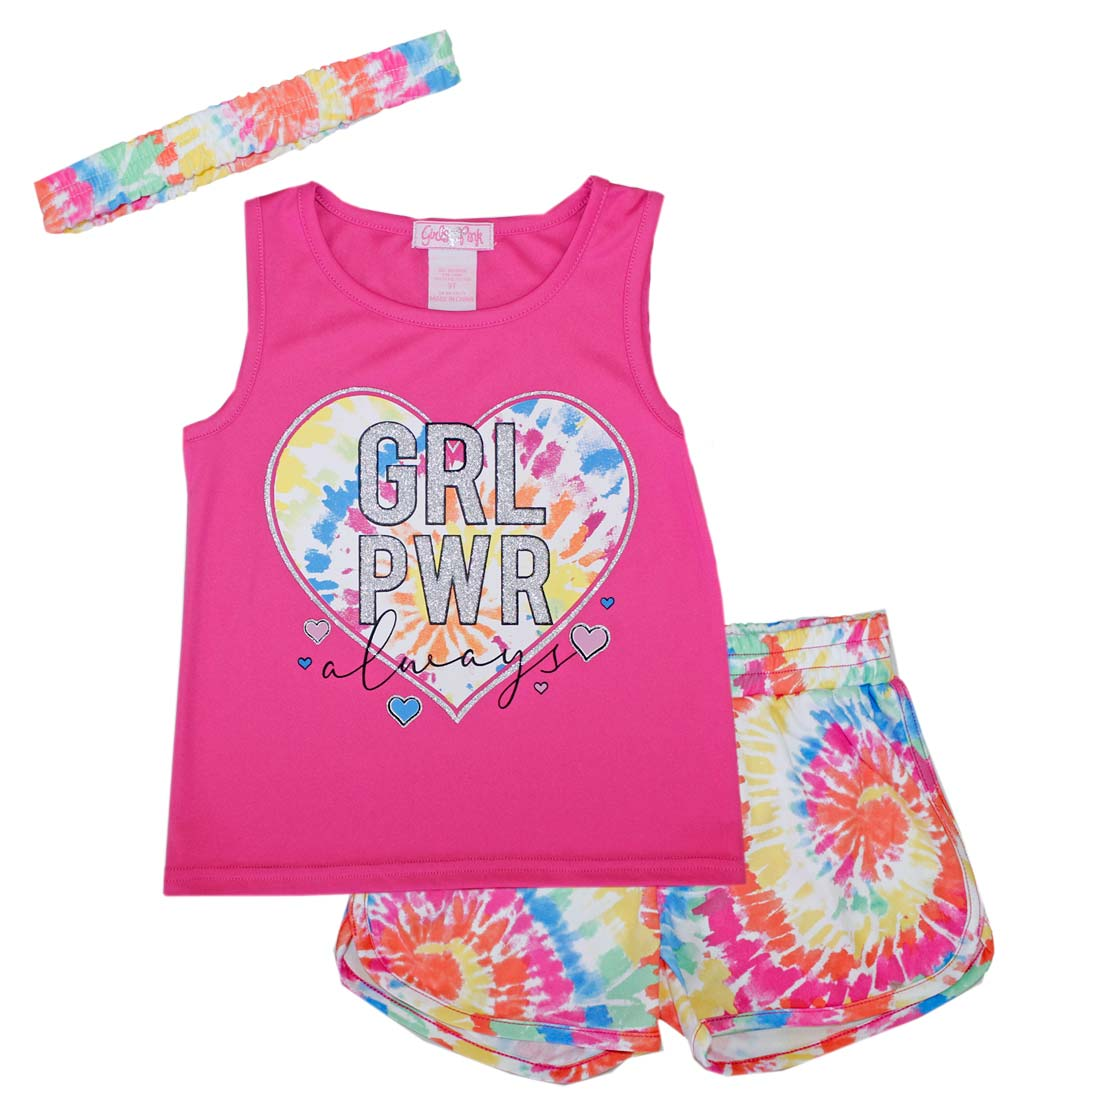 GIRLS PINK Grl Pwr Always Heart Screen Top Tye Dye Shorts-2278904